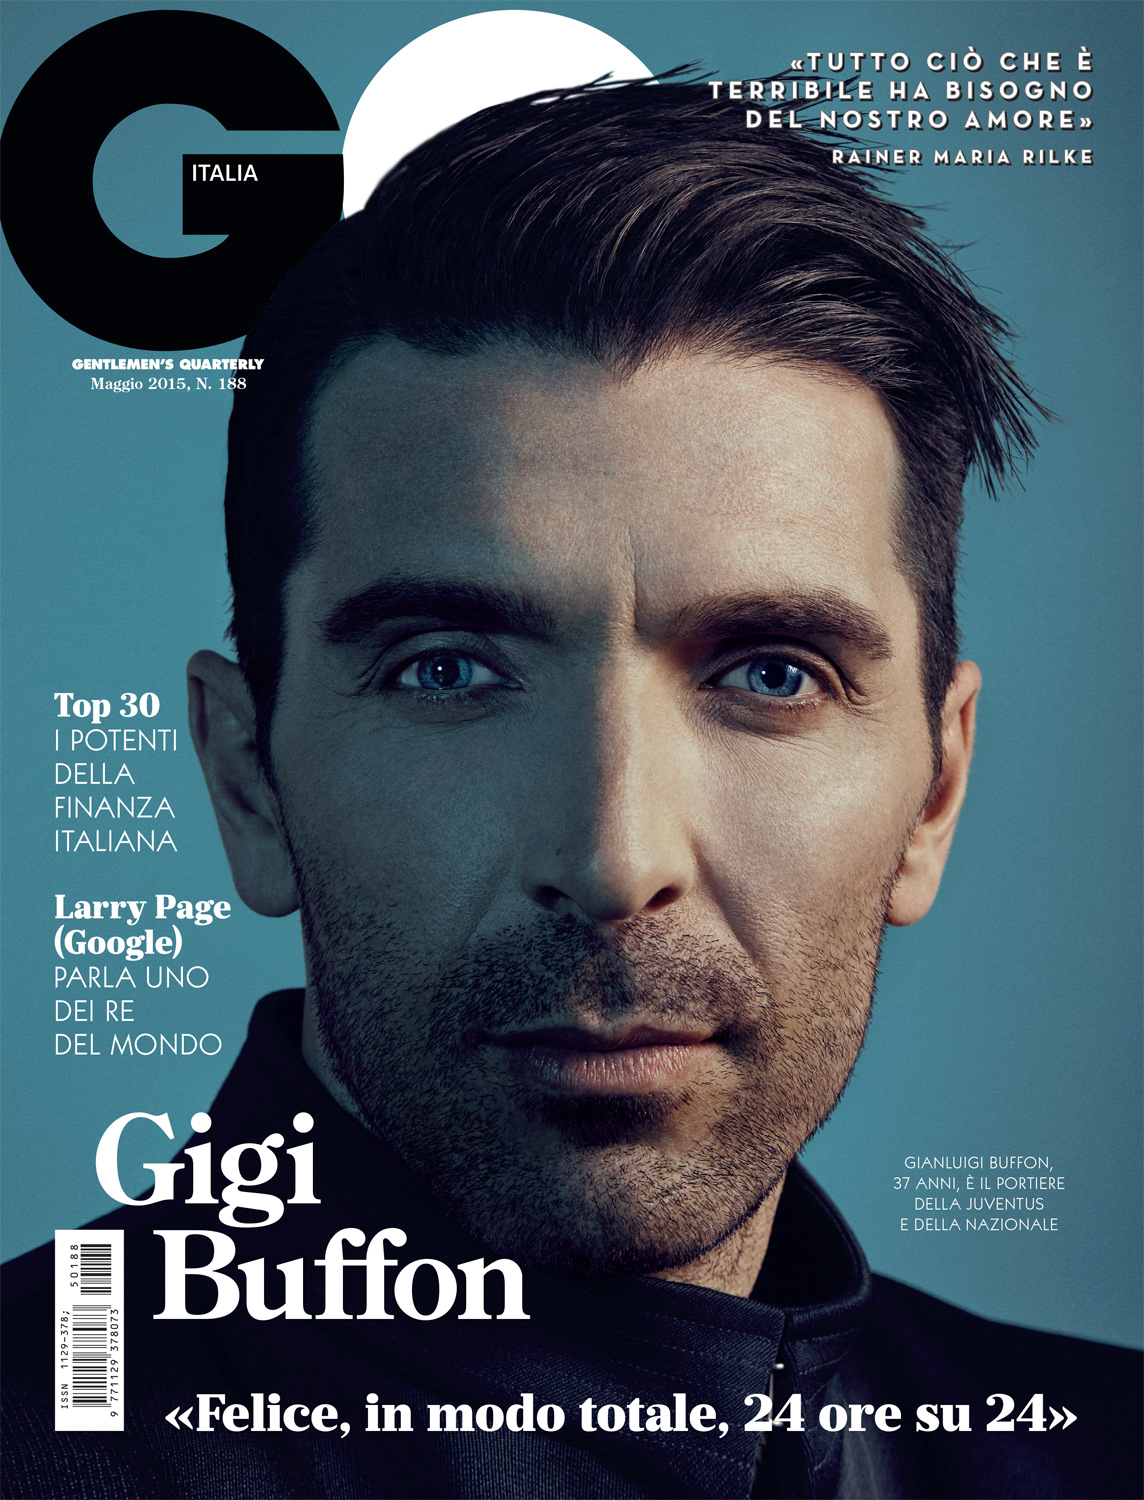 GQ Italia may 2015 | Mattia Balsamini | GQ Italia | Numerique Retouch Photo Retouching Studio